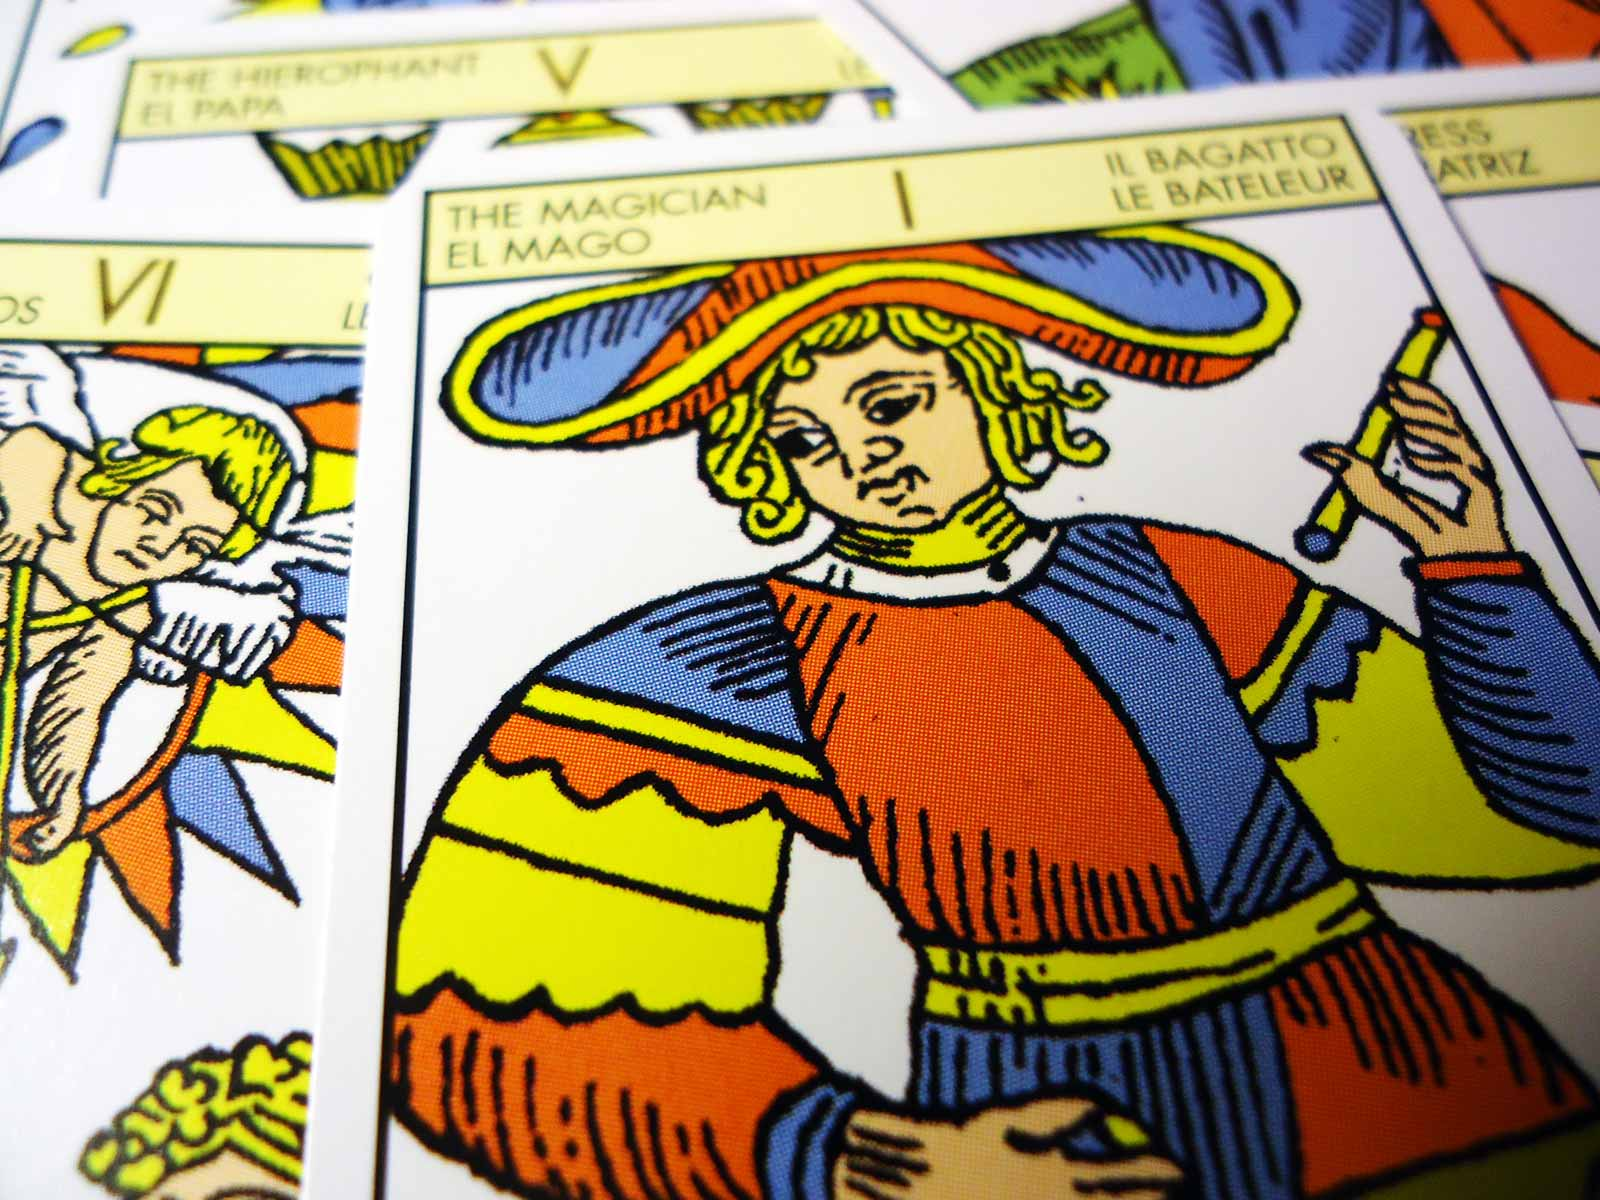 The Magician - tarot card, Tarot De Marseille